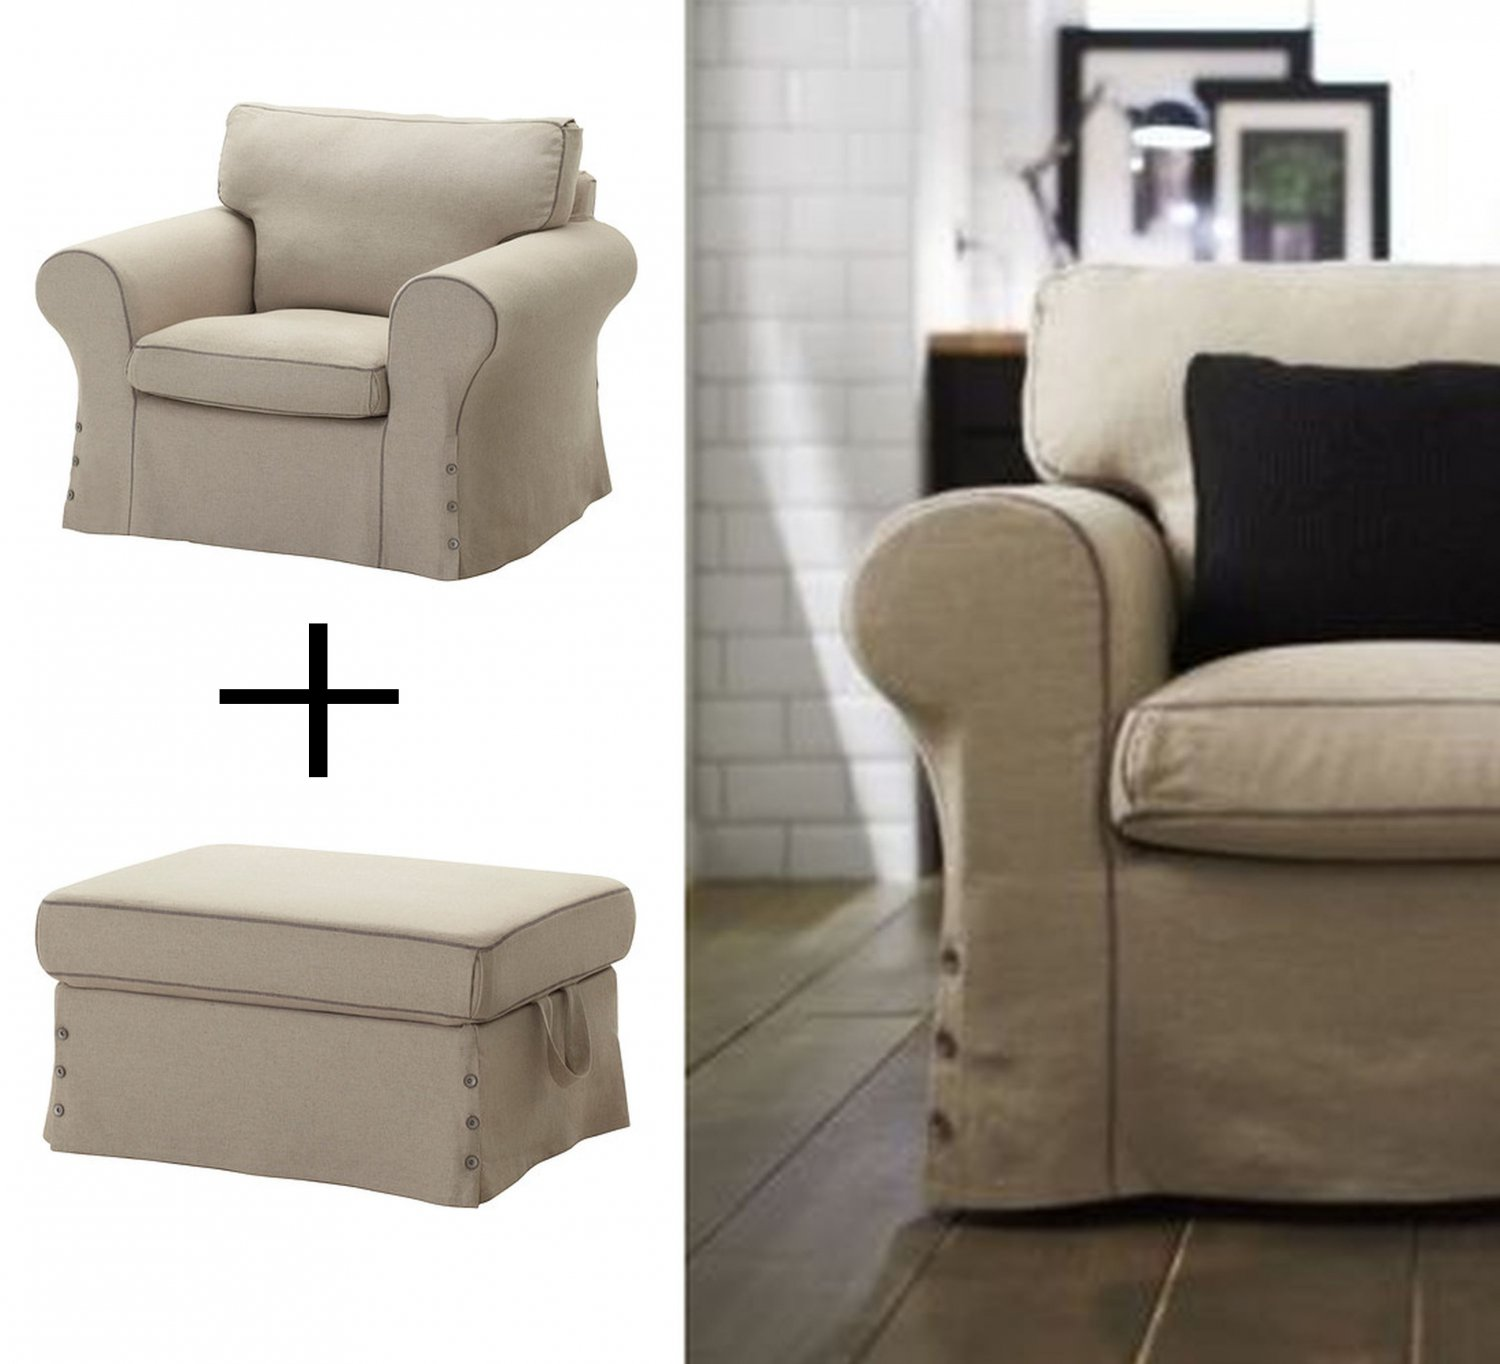 Ektorp Slipcovers Ikea Ektorp Armchair And Footstool Ottoman Covers Chair Slipcovers Risane Natural Linen Blend Beige